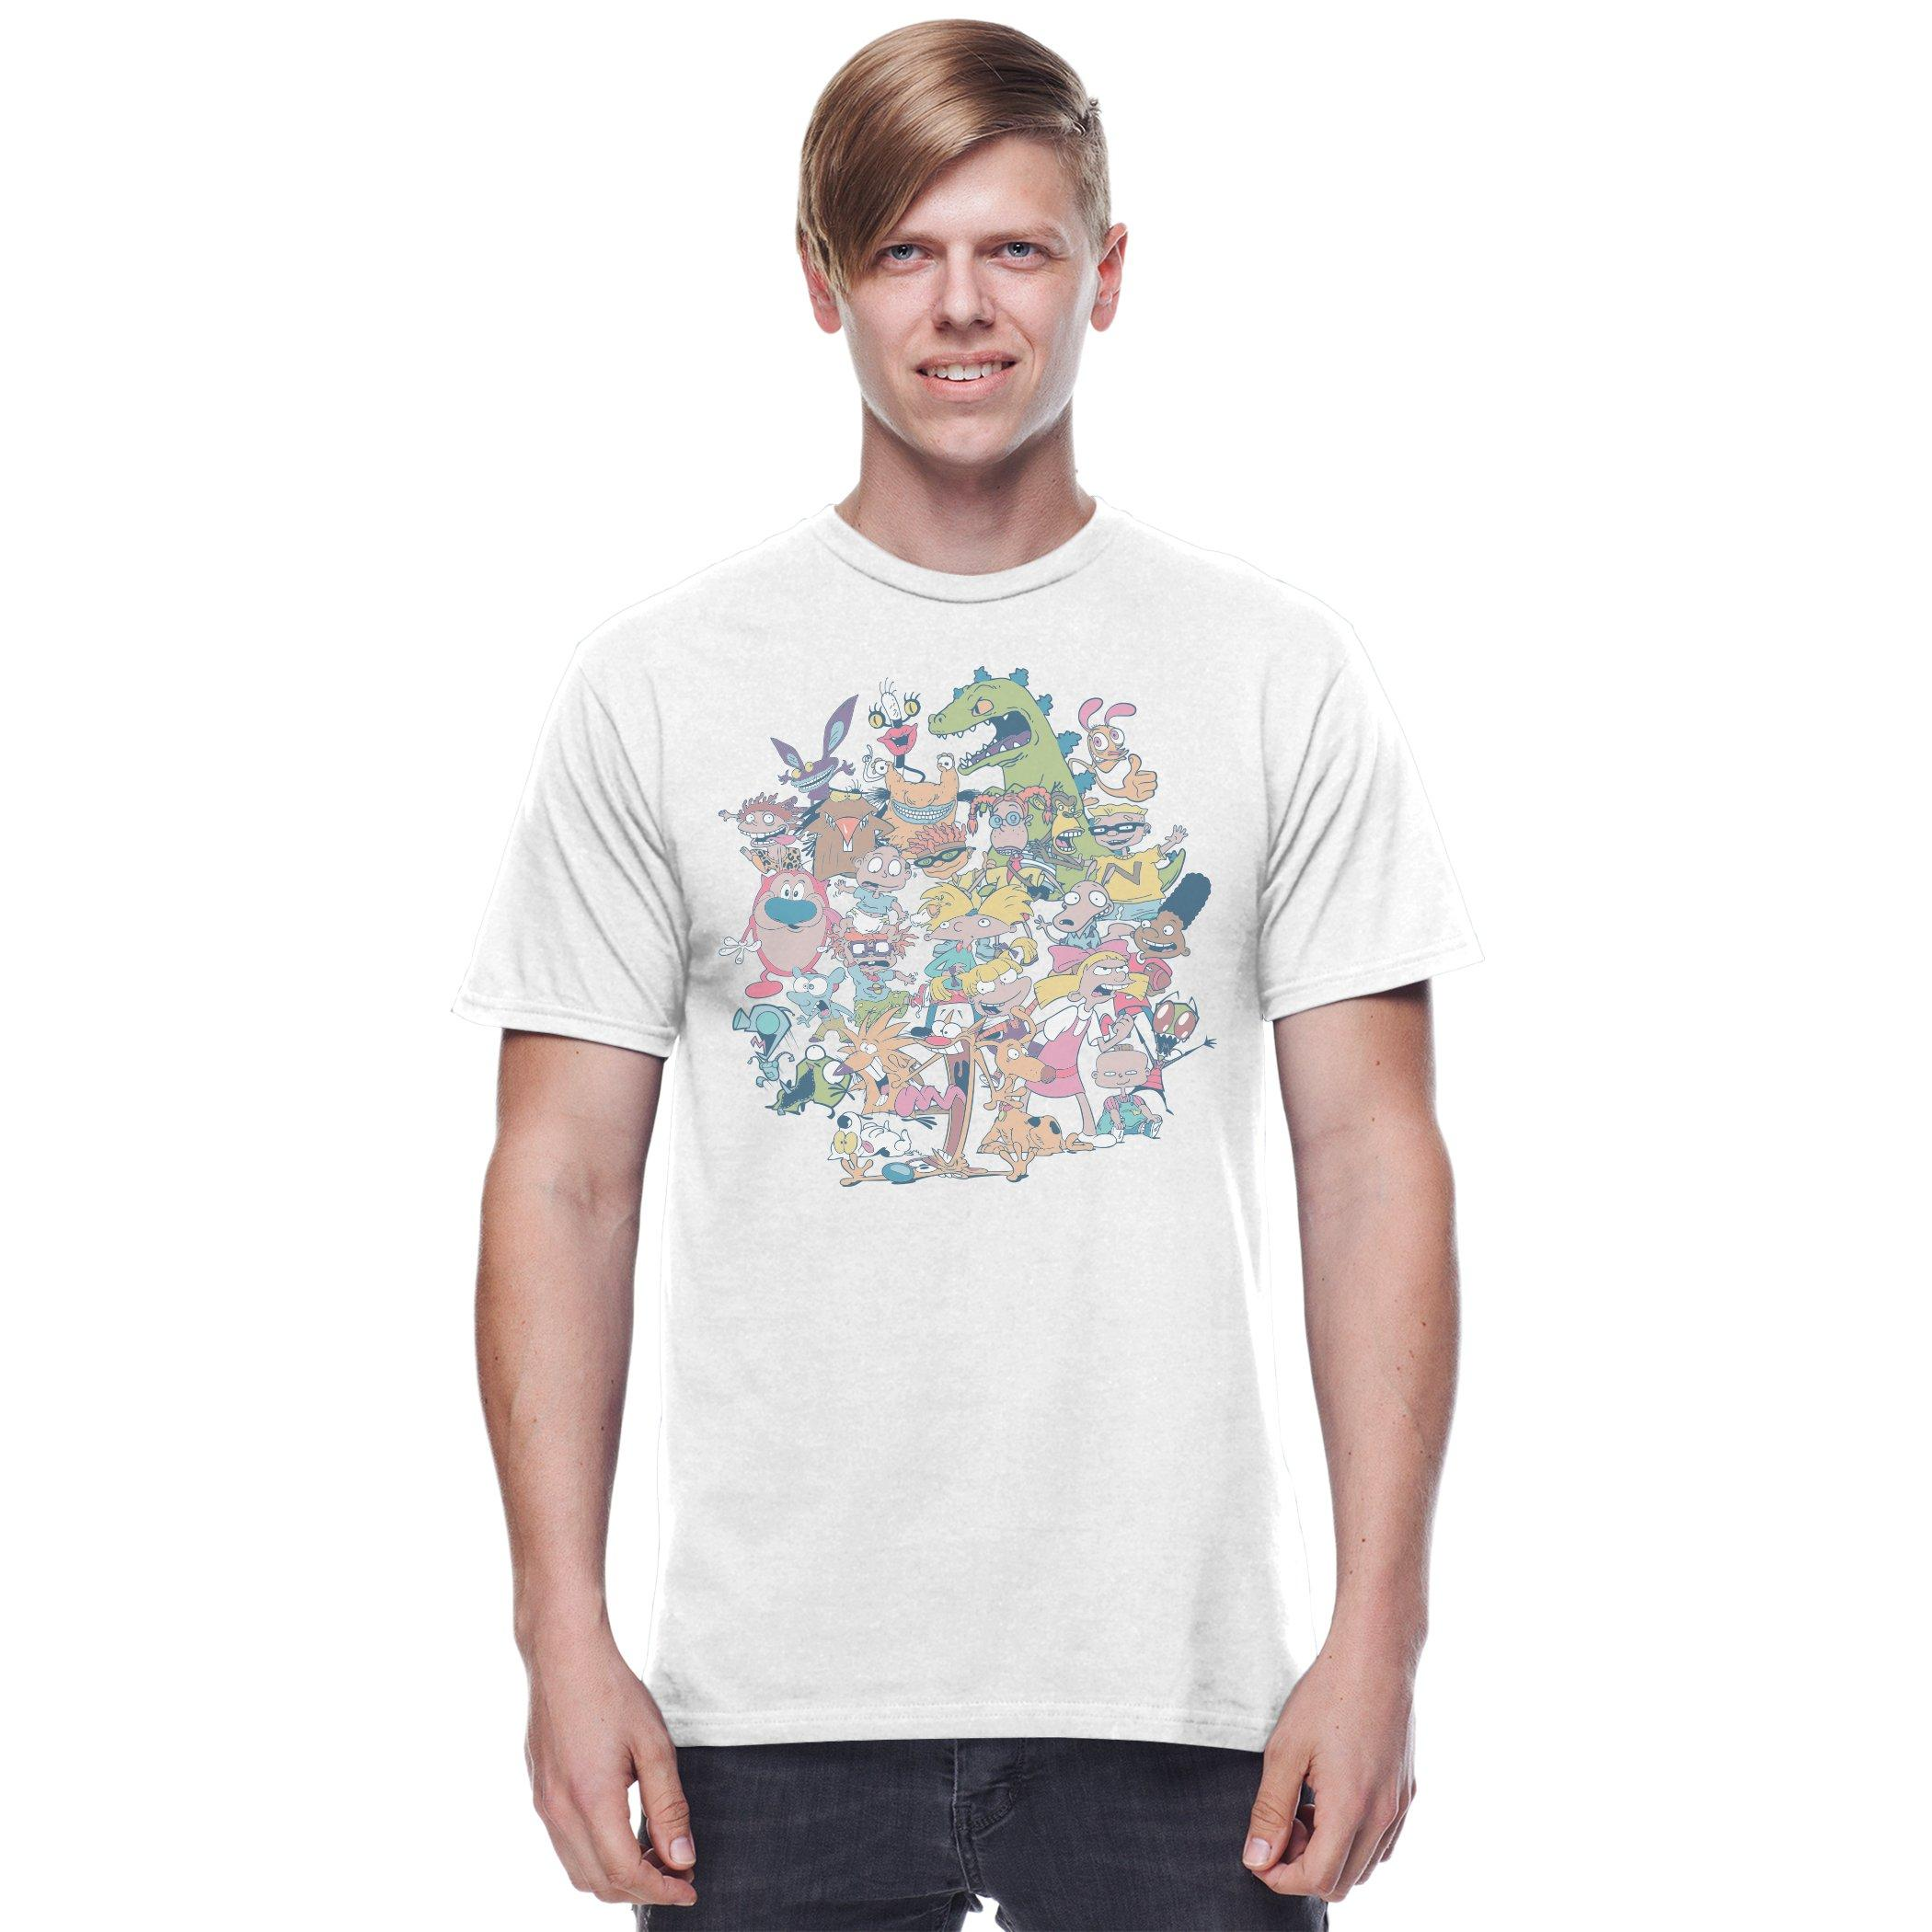 Deals on Mens Graphic T-Shirts